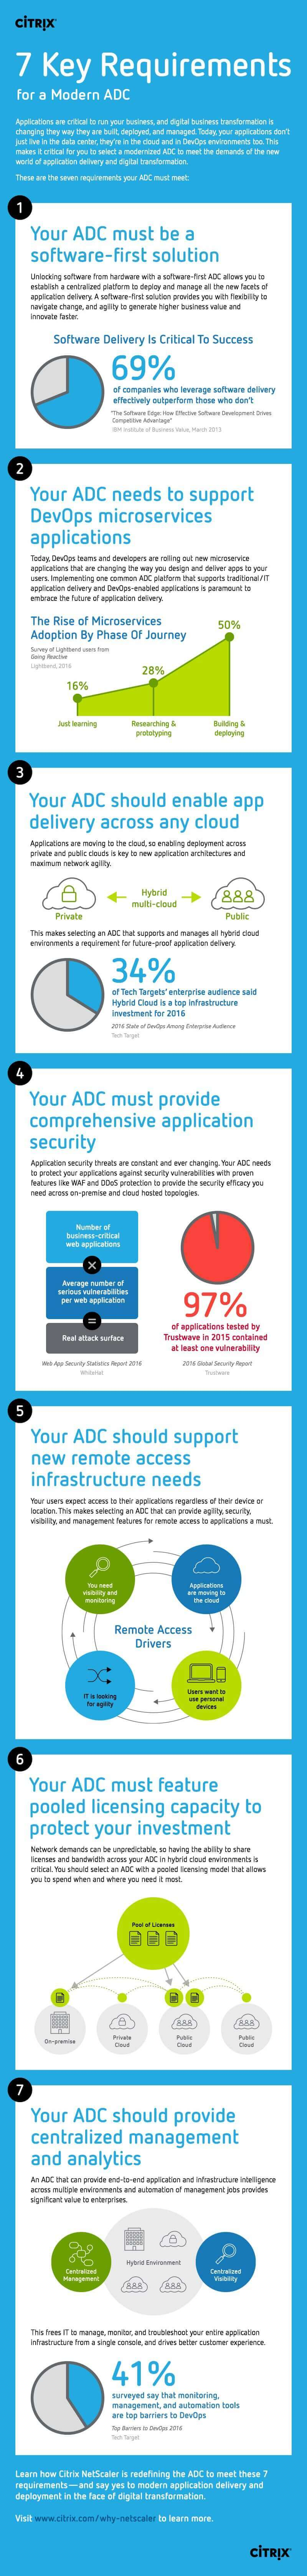 Learn the 7 Key Requirements for a Modern ADC